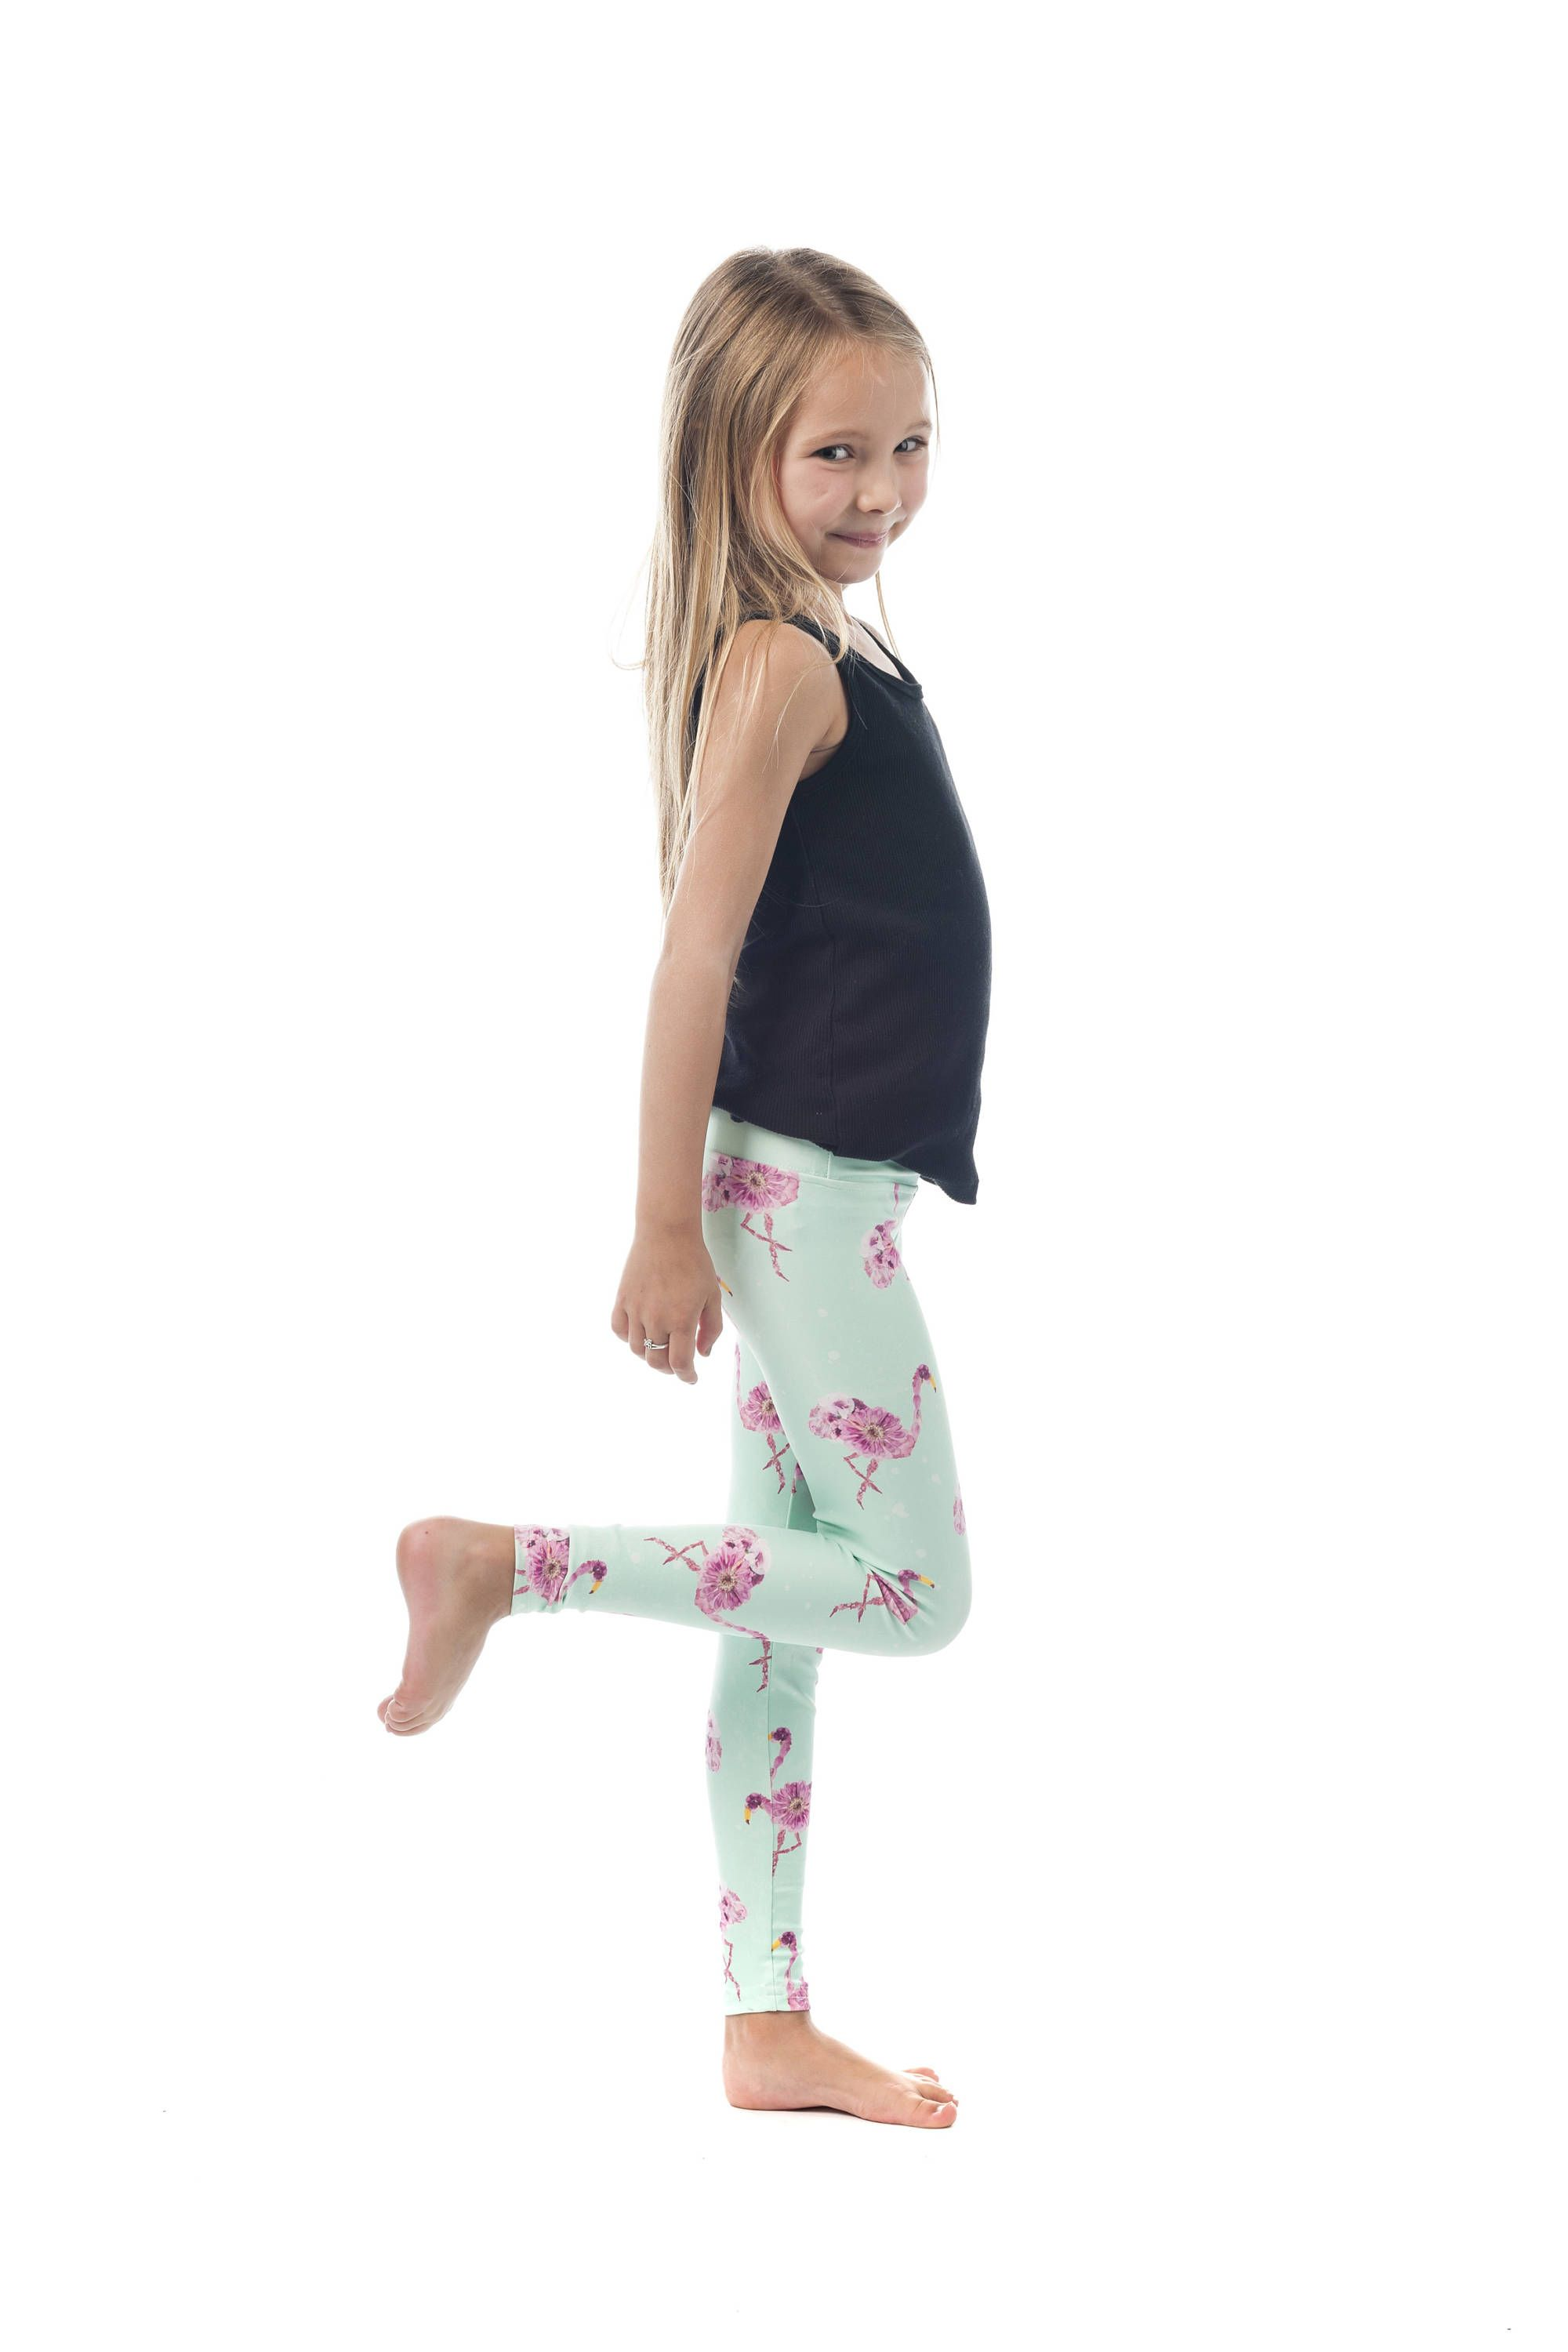 a56b7b138f086 Gypsy Flamingo Kids Leggings, Floral High waisted Baby Girl Tights, Gypsy  Skulls Printed Legging by shophotdame on Etsy